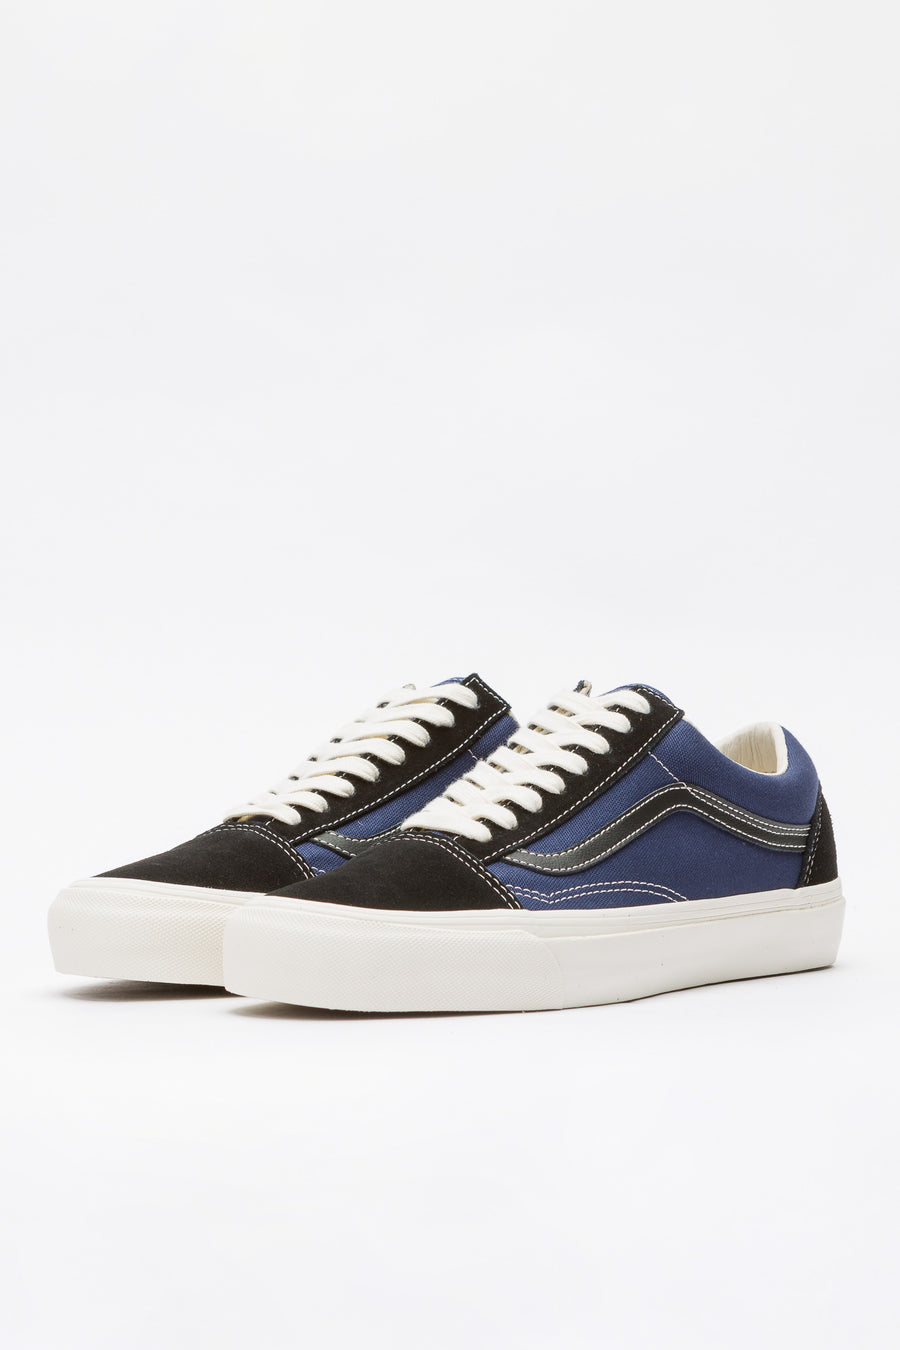 Vans Vault Old Skool LX in Black/Blue - Notre